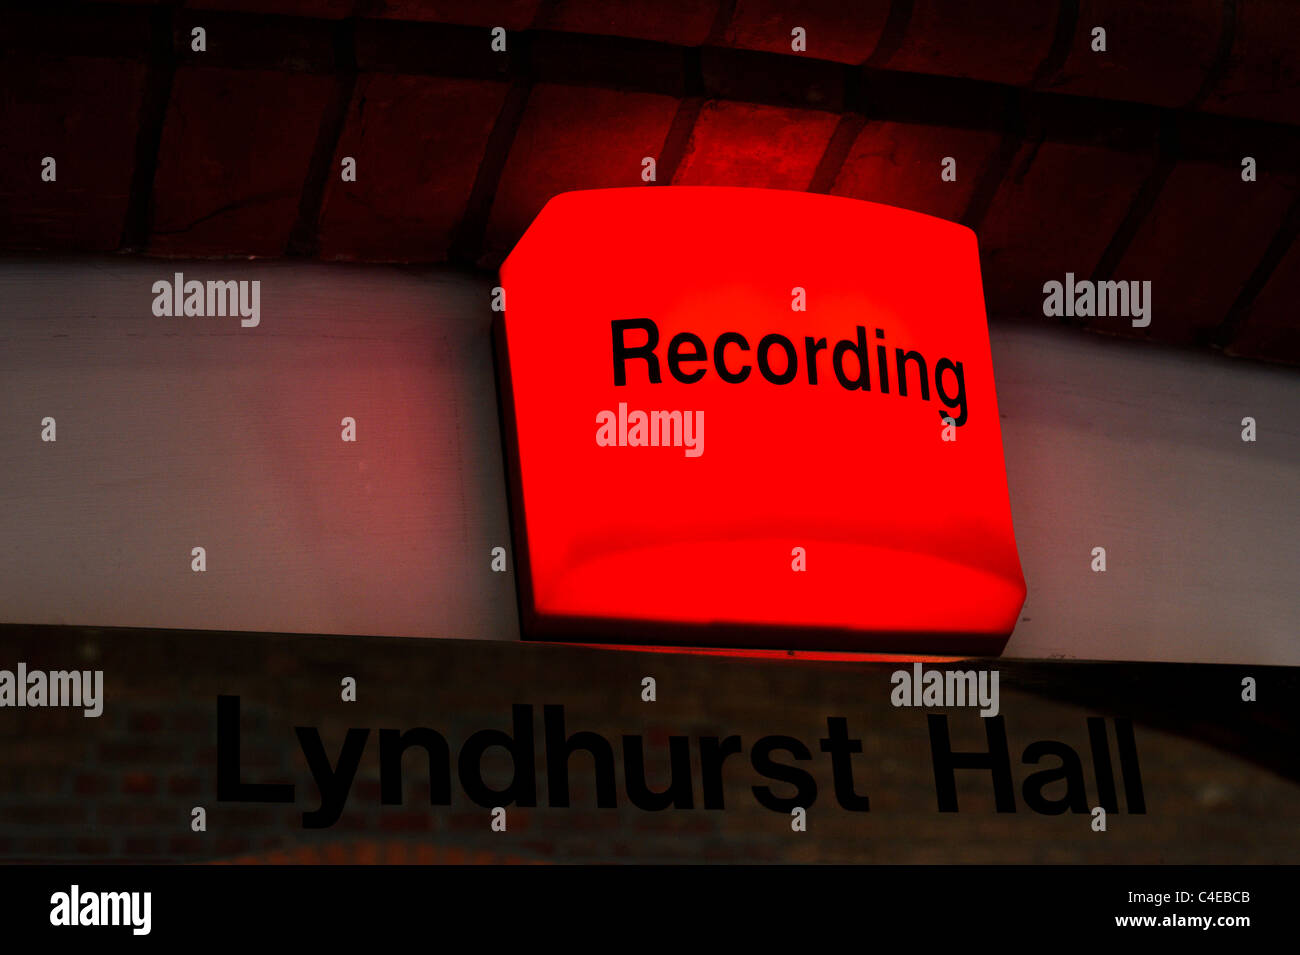 A Quot Recording In Progress Quot Red Light Lit About The Door